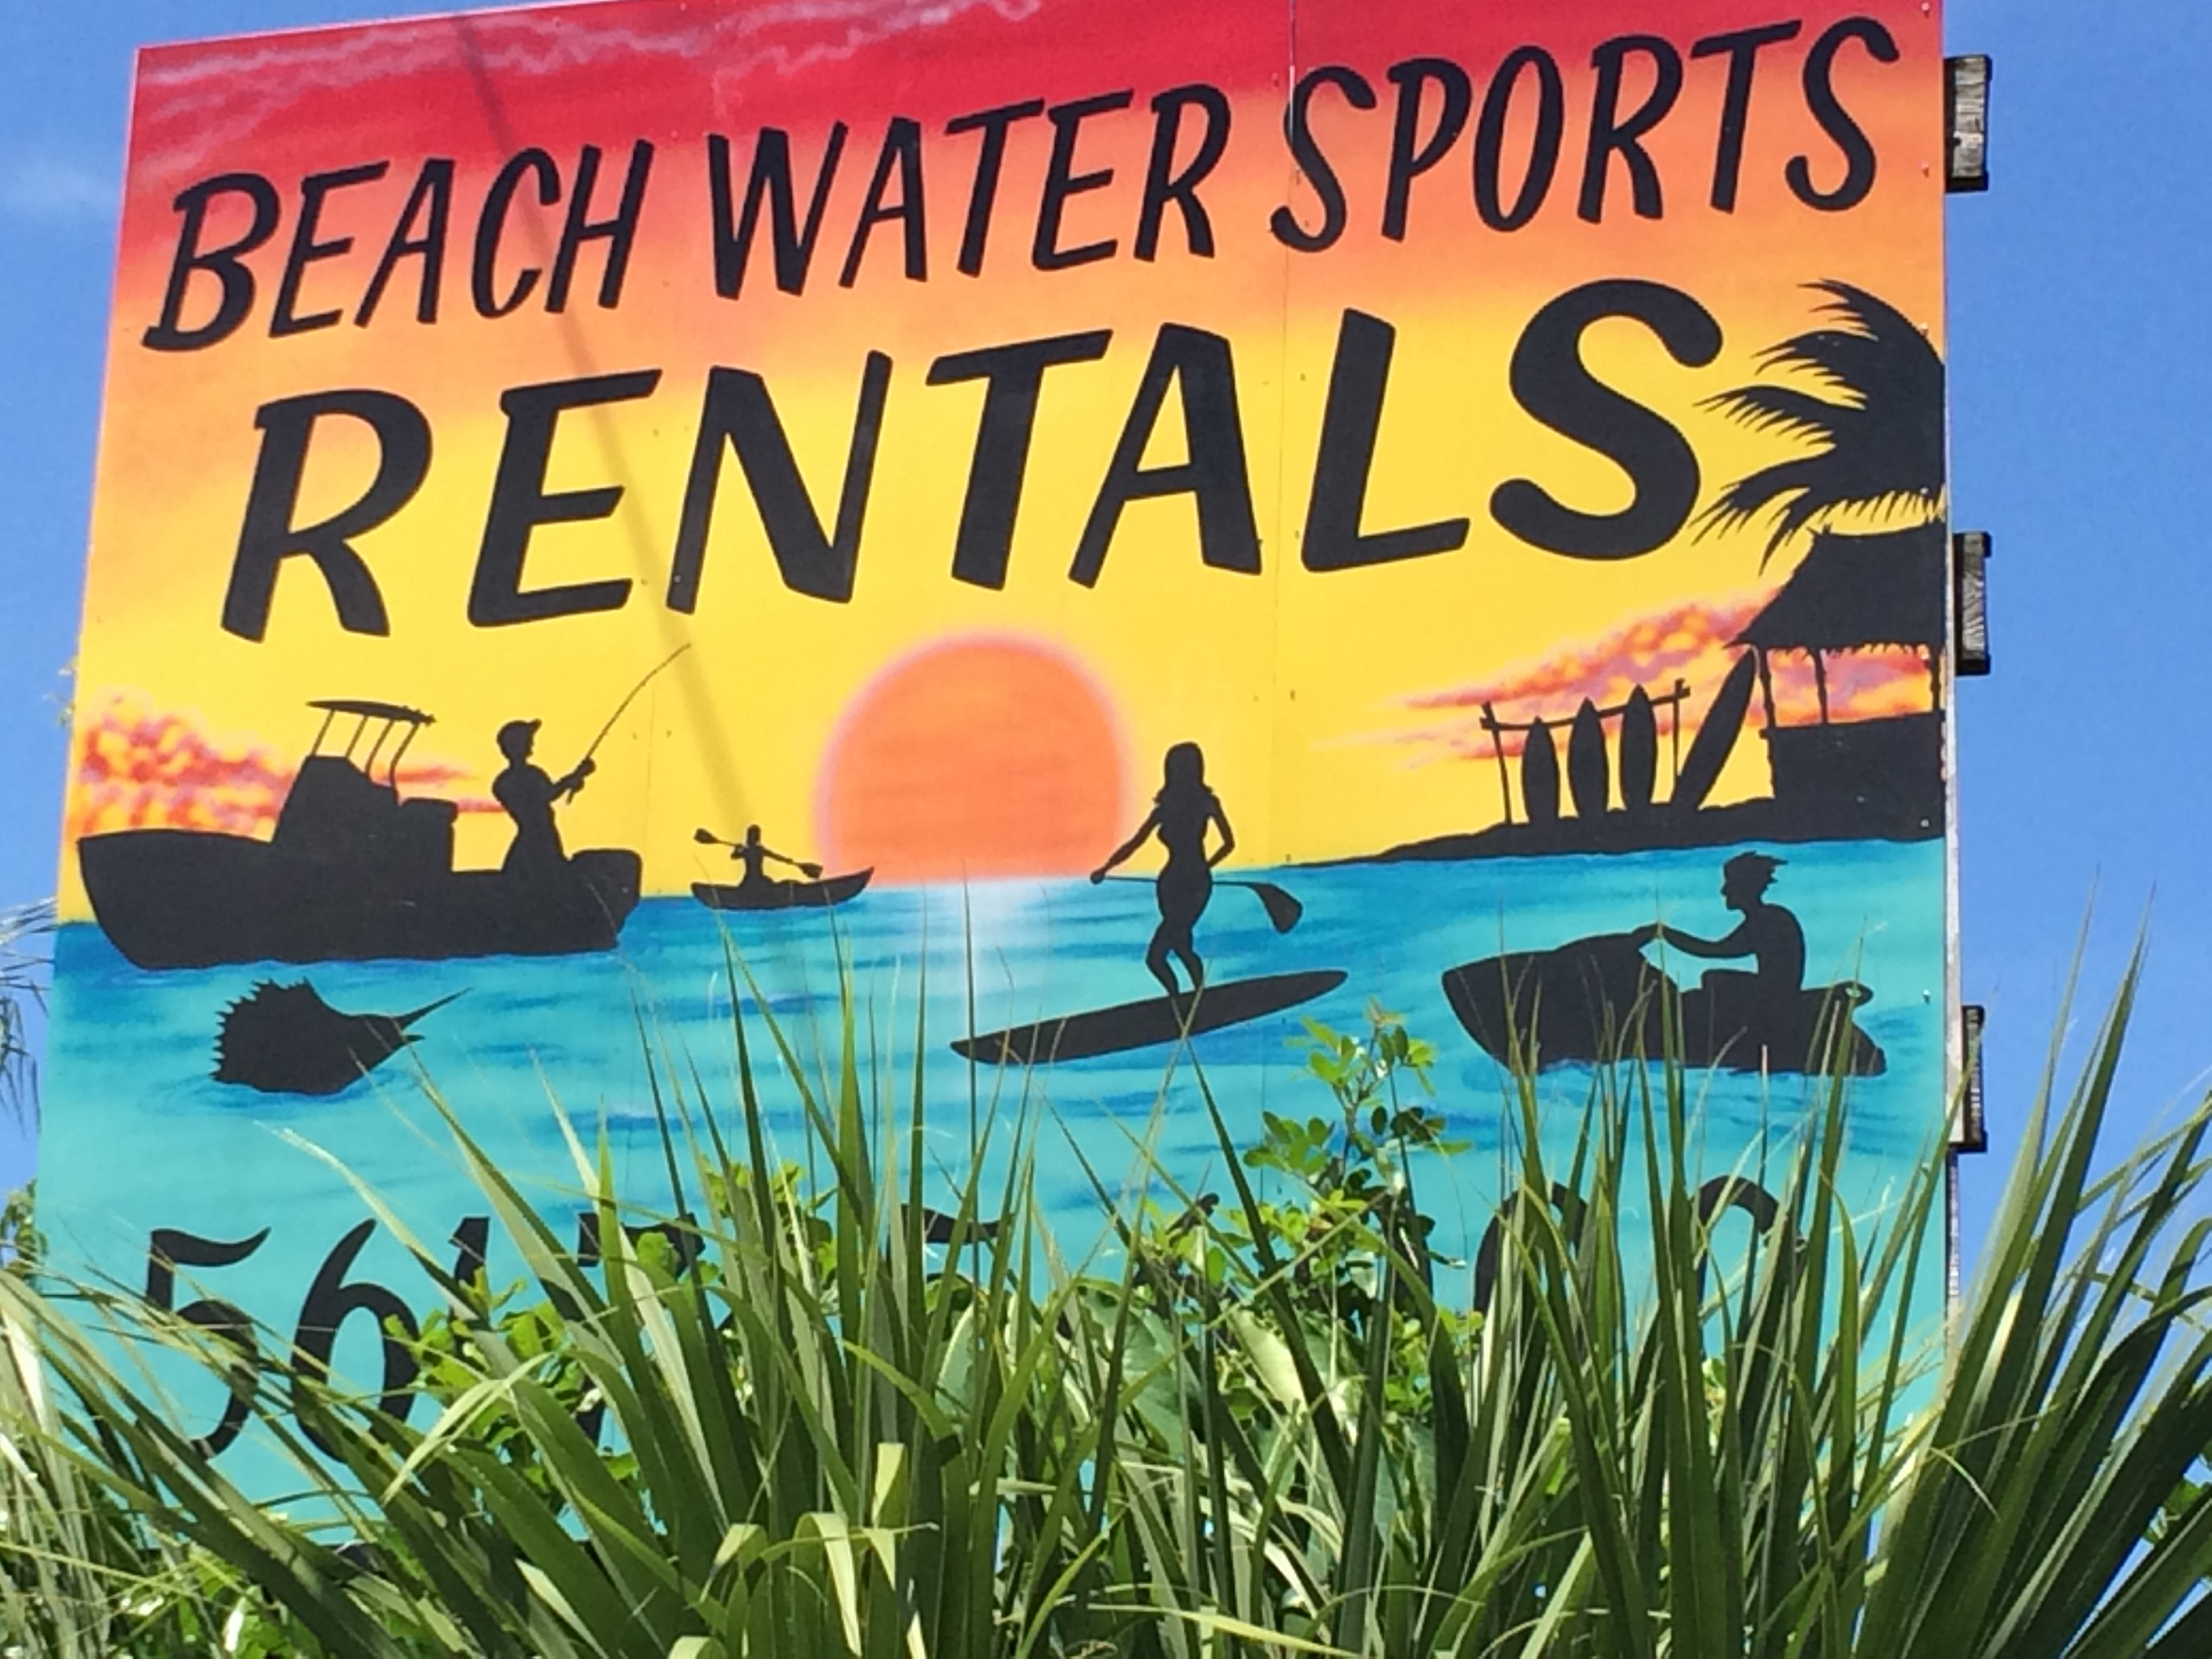 Action Water Sports has been Bringing Families Together since and we're just getting started. So come in, meet our staff, and see what makes AWS a special experience for all who come. Or get on our email list, and we'll keep you informed with all the latest Action news.